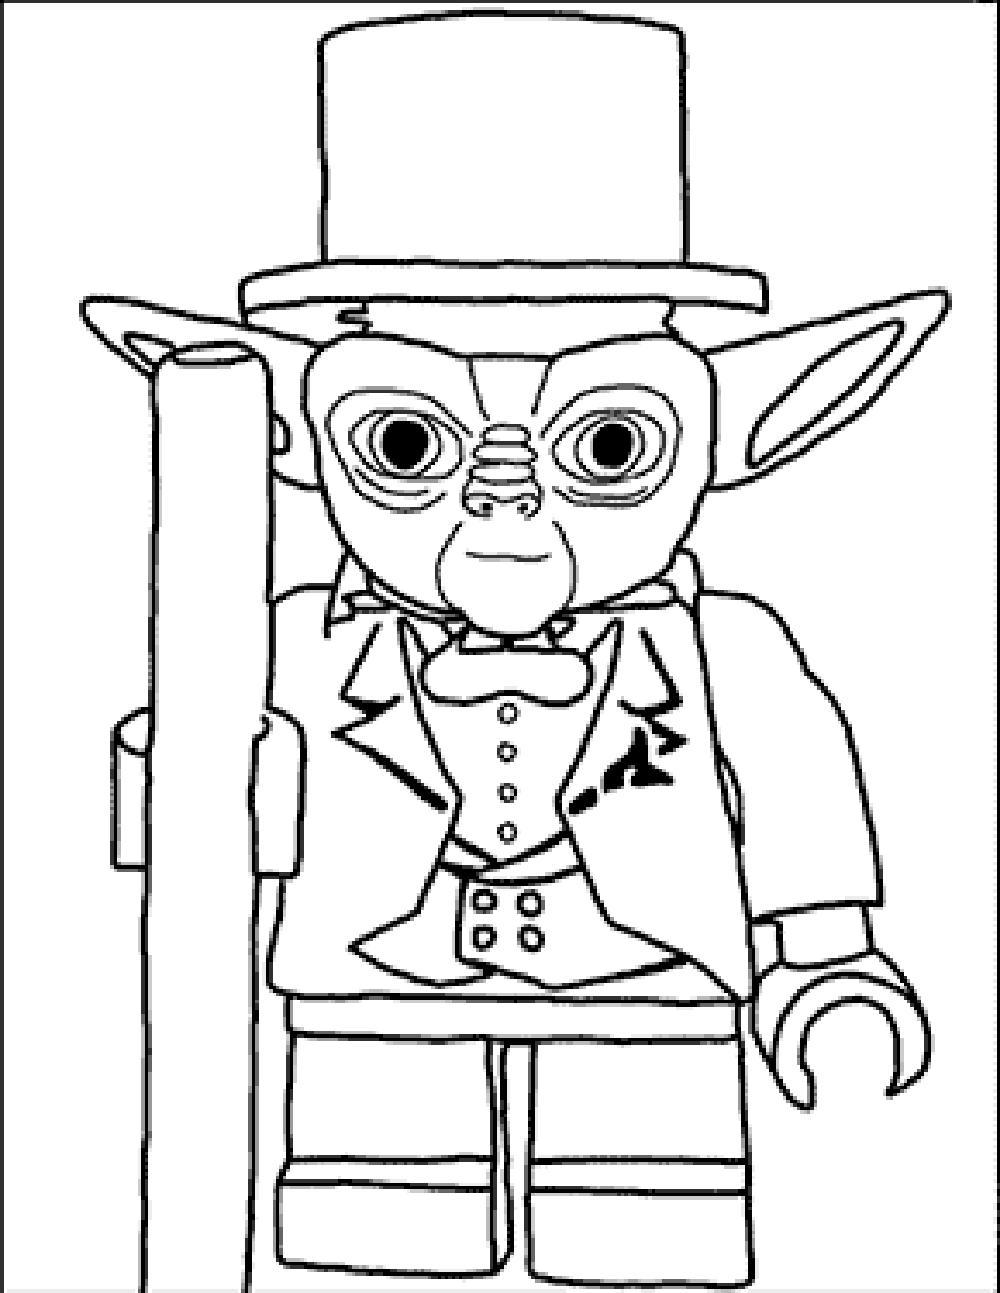 lego star wars pictures to colour lego star wars coloring pages r2d2 part 2 star wars to lego pictures colour